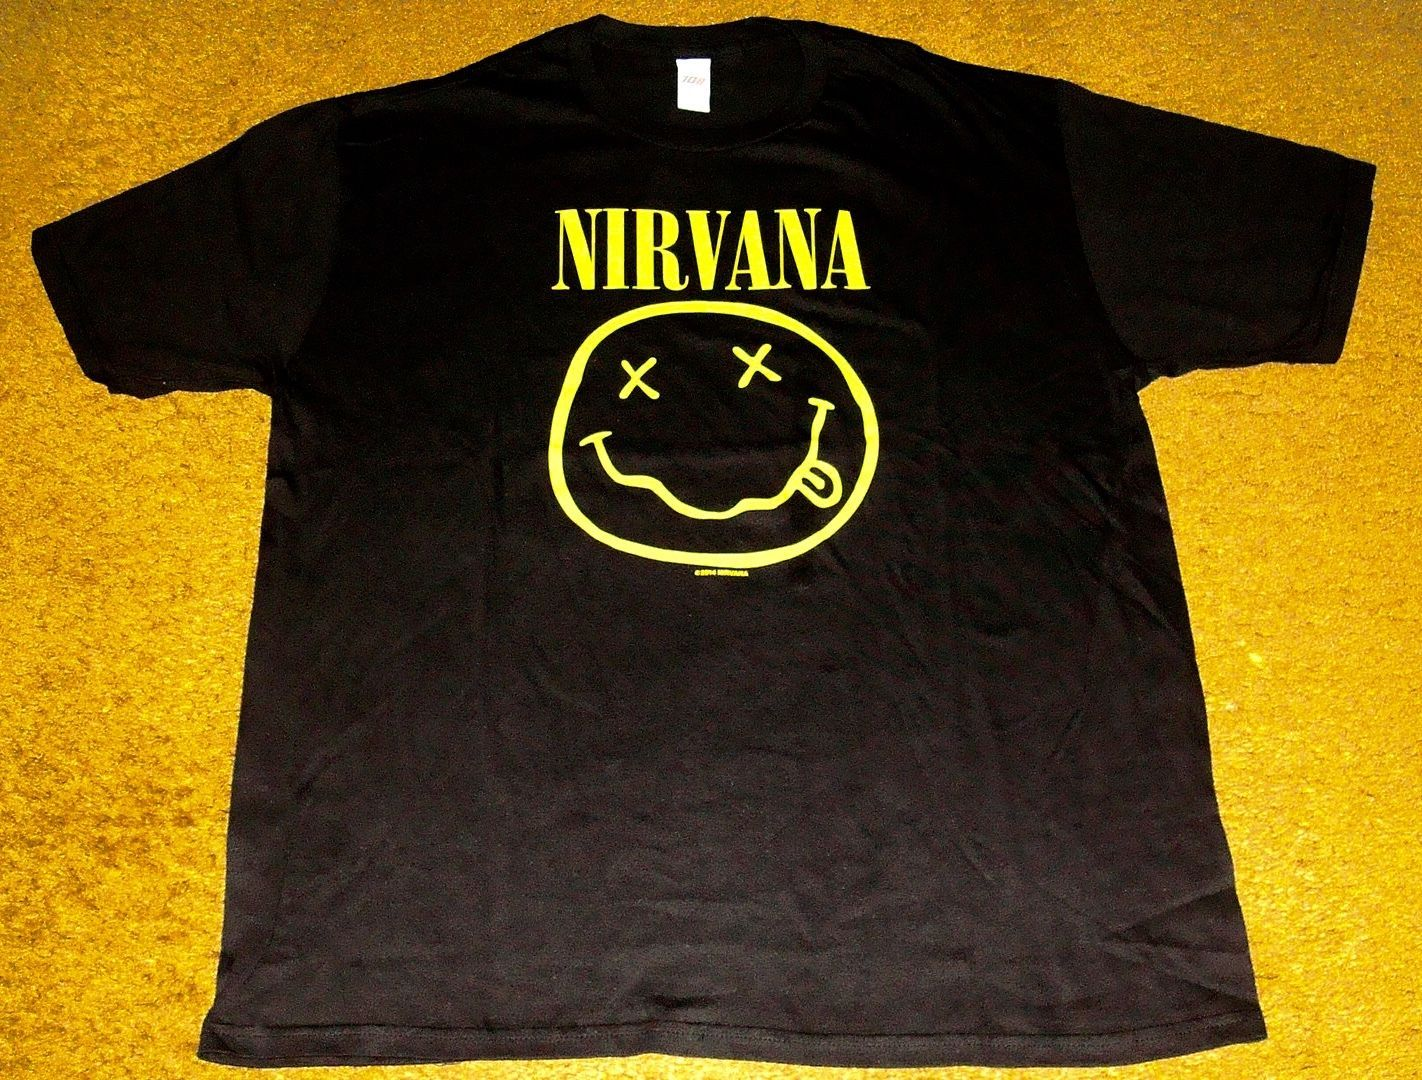 Primary image for NIRVANA T-SHIRT BRAND NEW!  SIZE LARGE!   ROCK & ROLL!